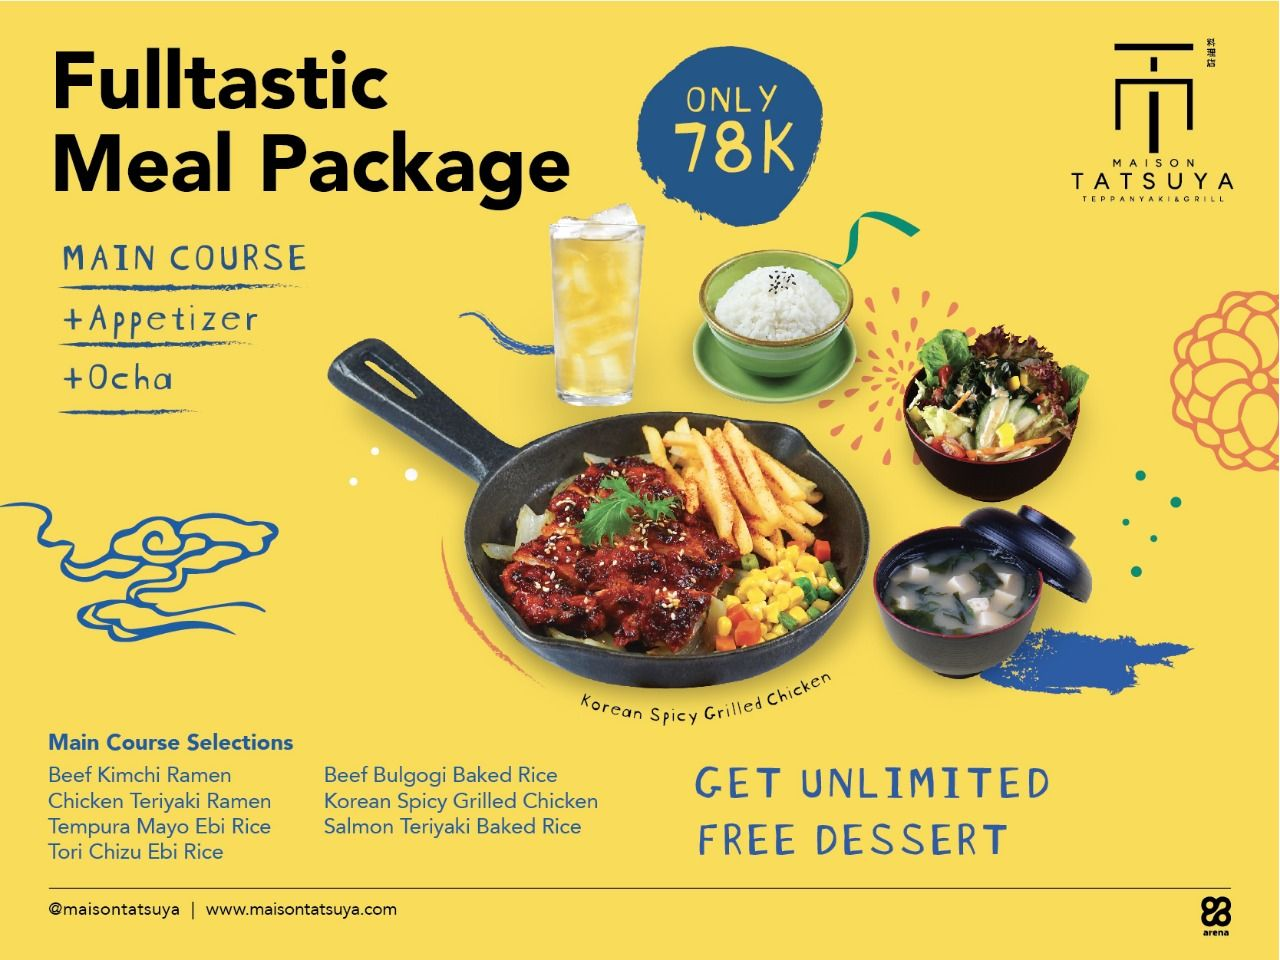 FULLTASTIC MEAL PACKAGE ONLY RP 78K image